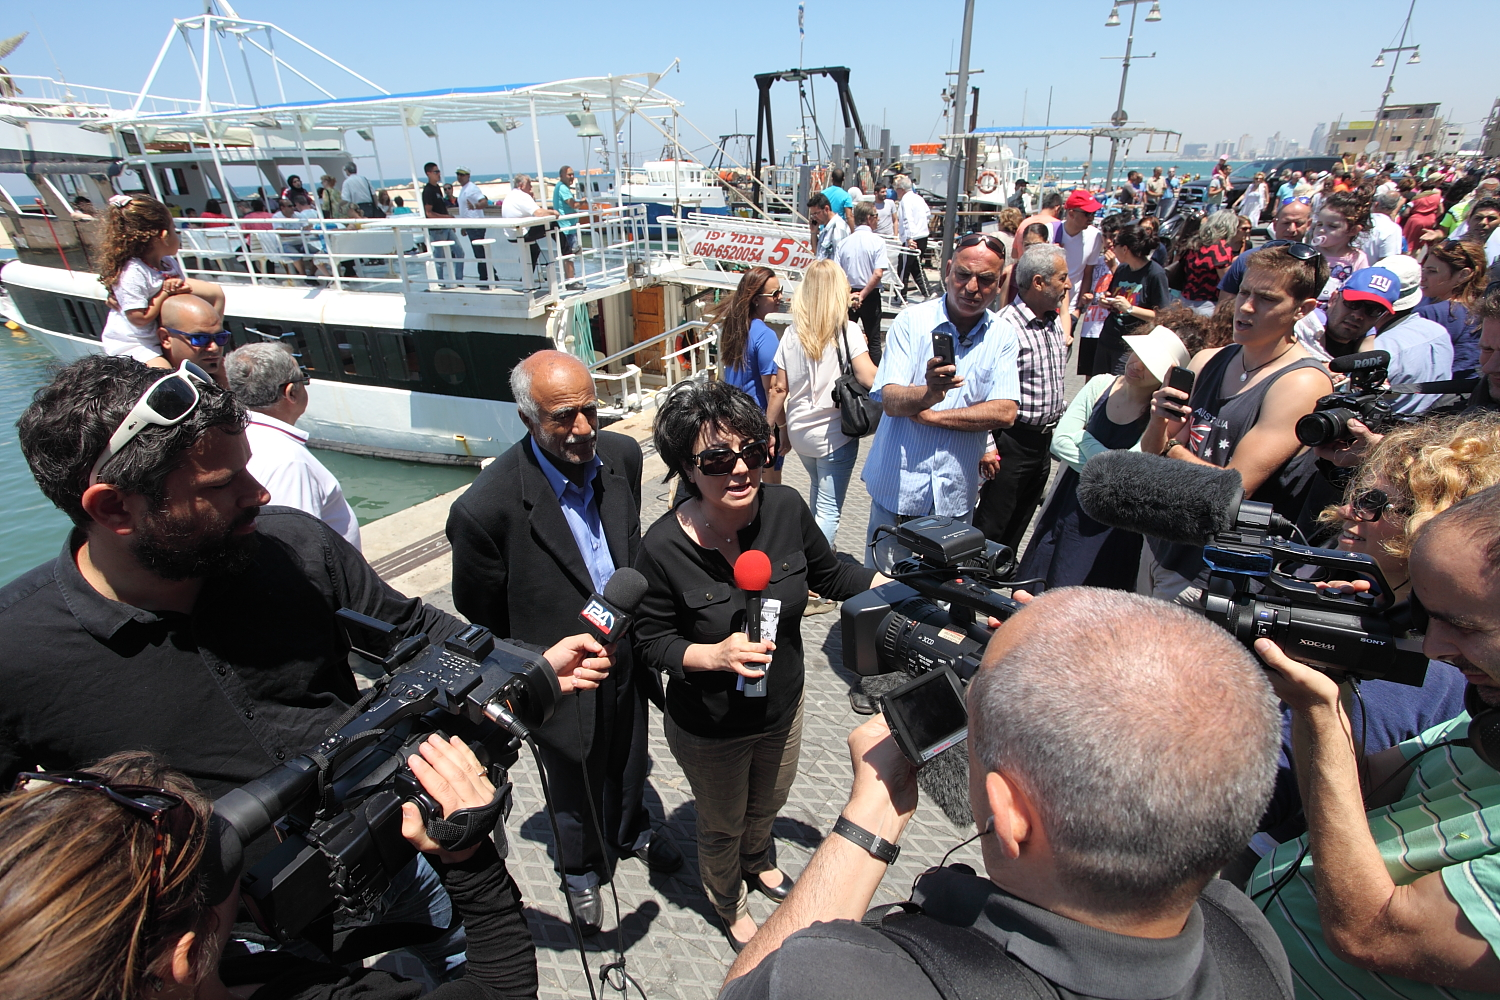 Haneen Zoabi, a Palestinian citizen of Israel and a representative of the Arab Joint List in the recent Israeli elections, joined activists in Jaffa. 'We cannot ignore the expelling of 85 percent of the Palestinian population [during the Nakba] and the establishment of a state that defines itself as a Jewish state,' she said. 'In my own homeland, I am considered a guest or an invader.' [Rich Wiles/Al Jazeera]